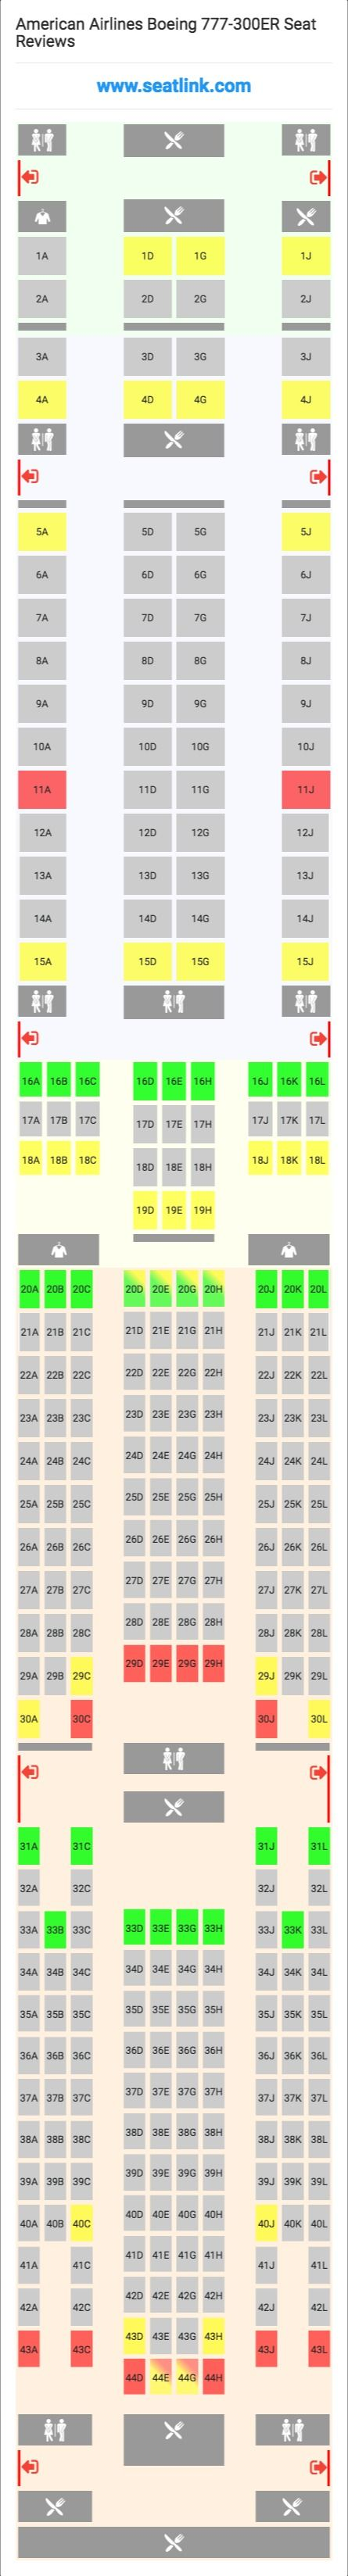 American Airlines Boeing 777 300er 77w Seat Map Boeing